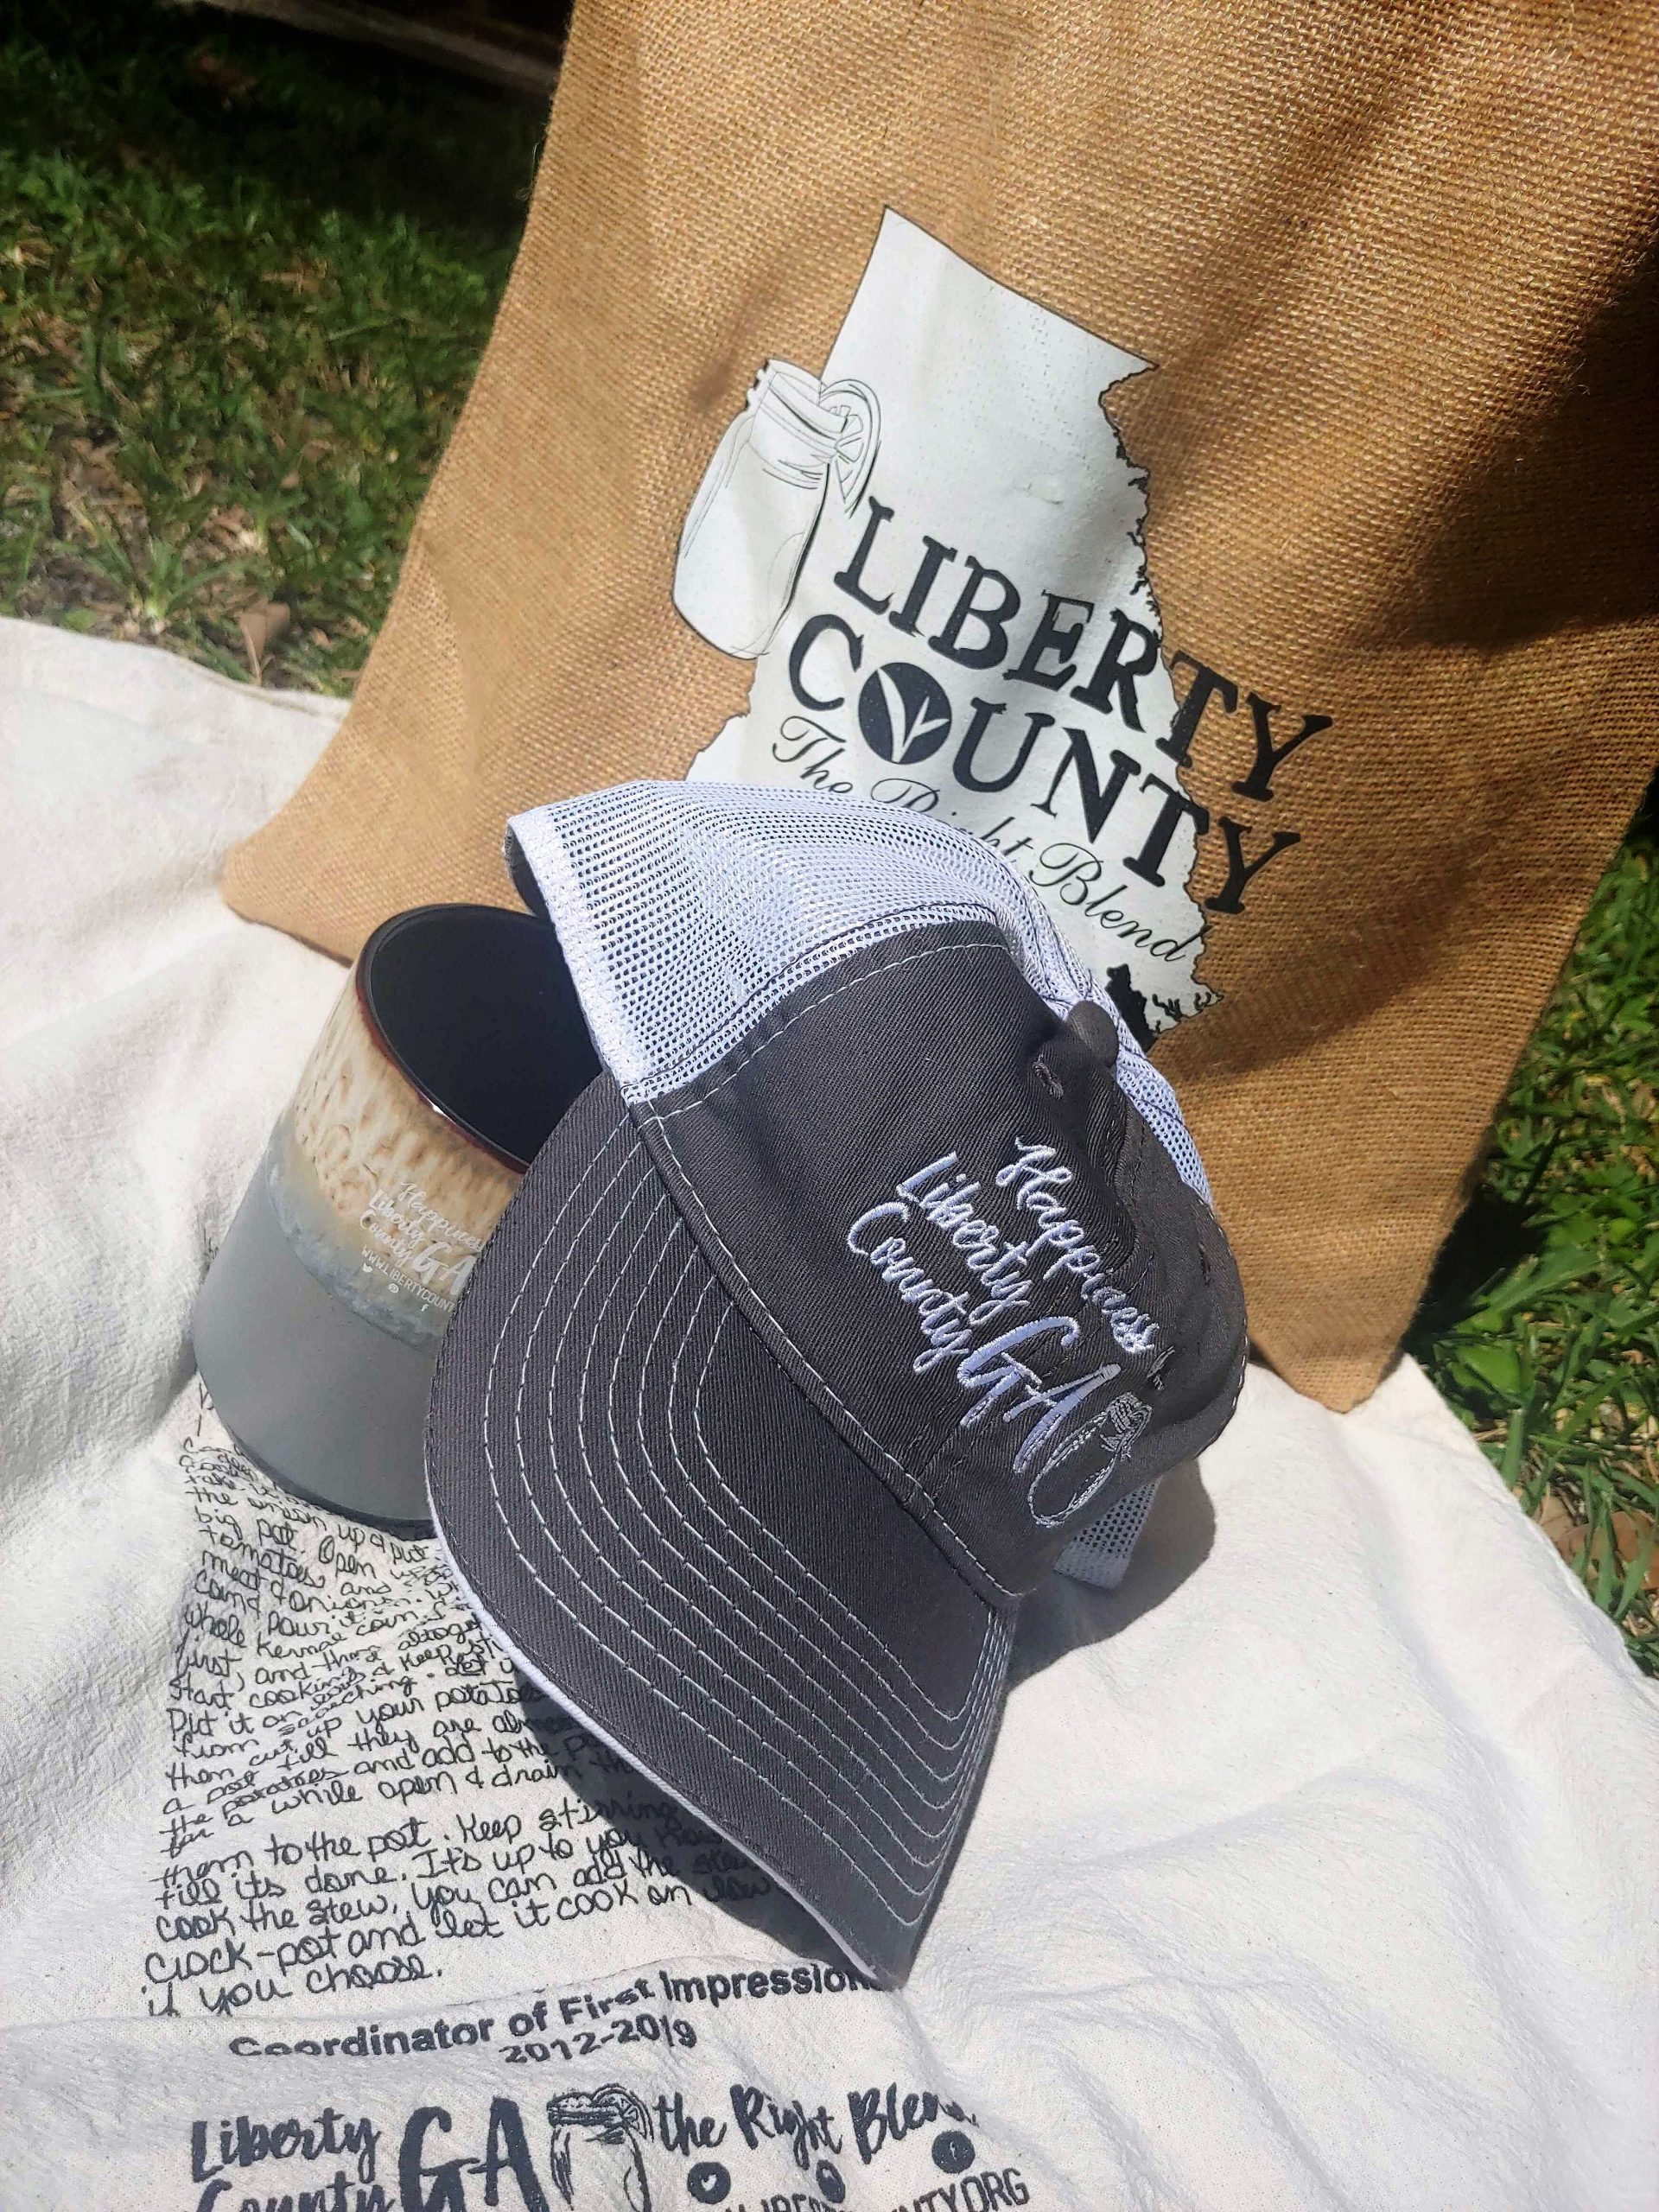 Hat and mug on picnic blanket